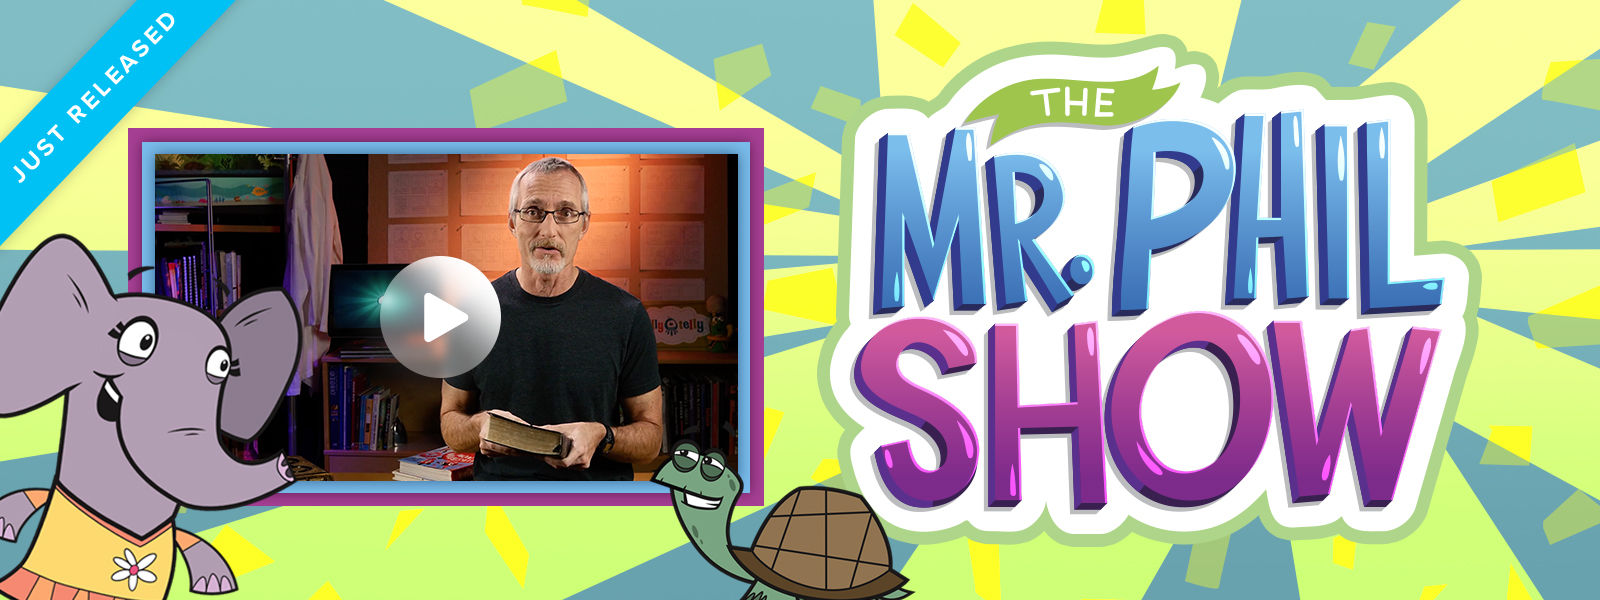 The Mr. Phil Show